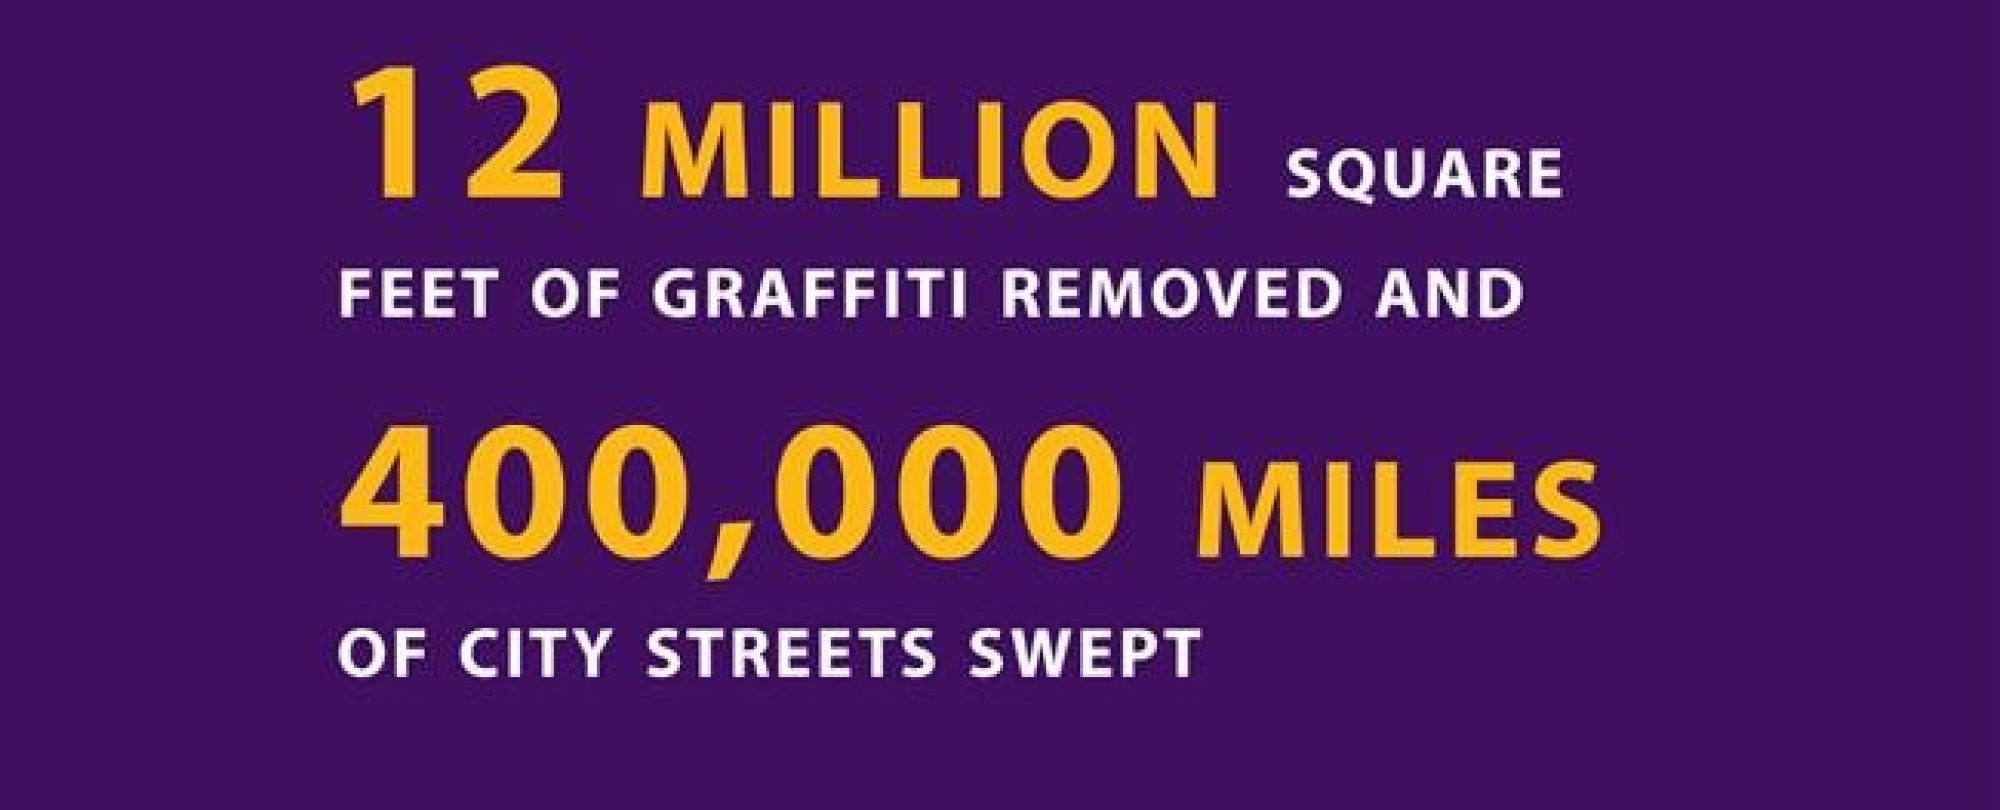 12 million square feet of graffiti removed and 400,000 miles of city streets swept.